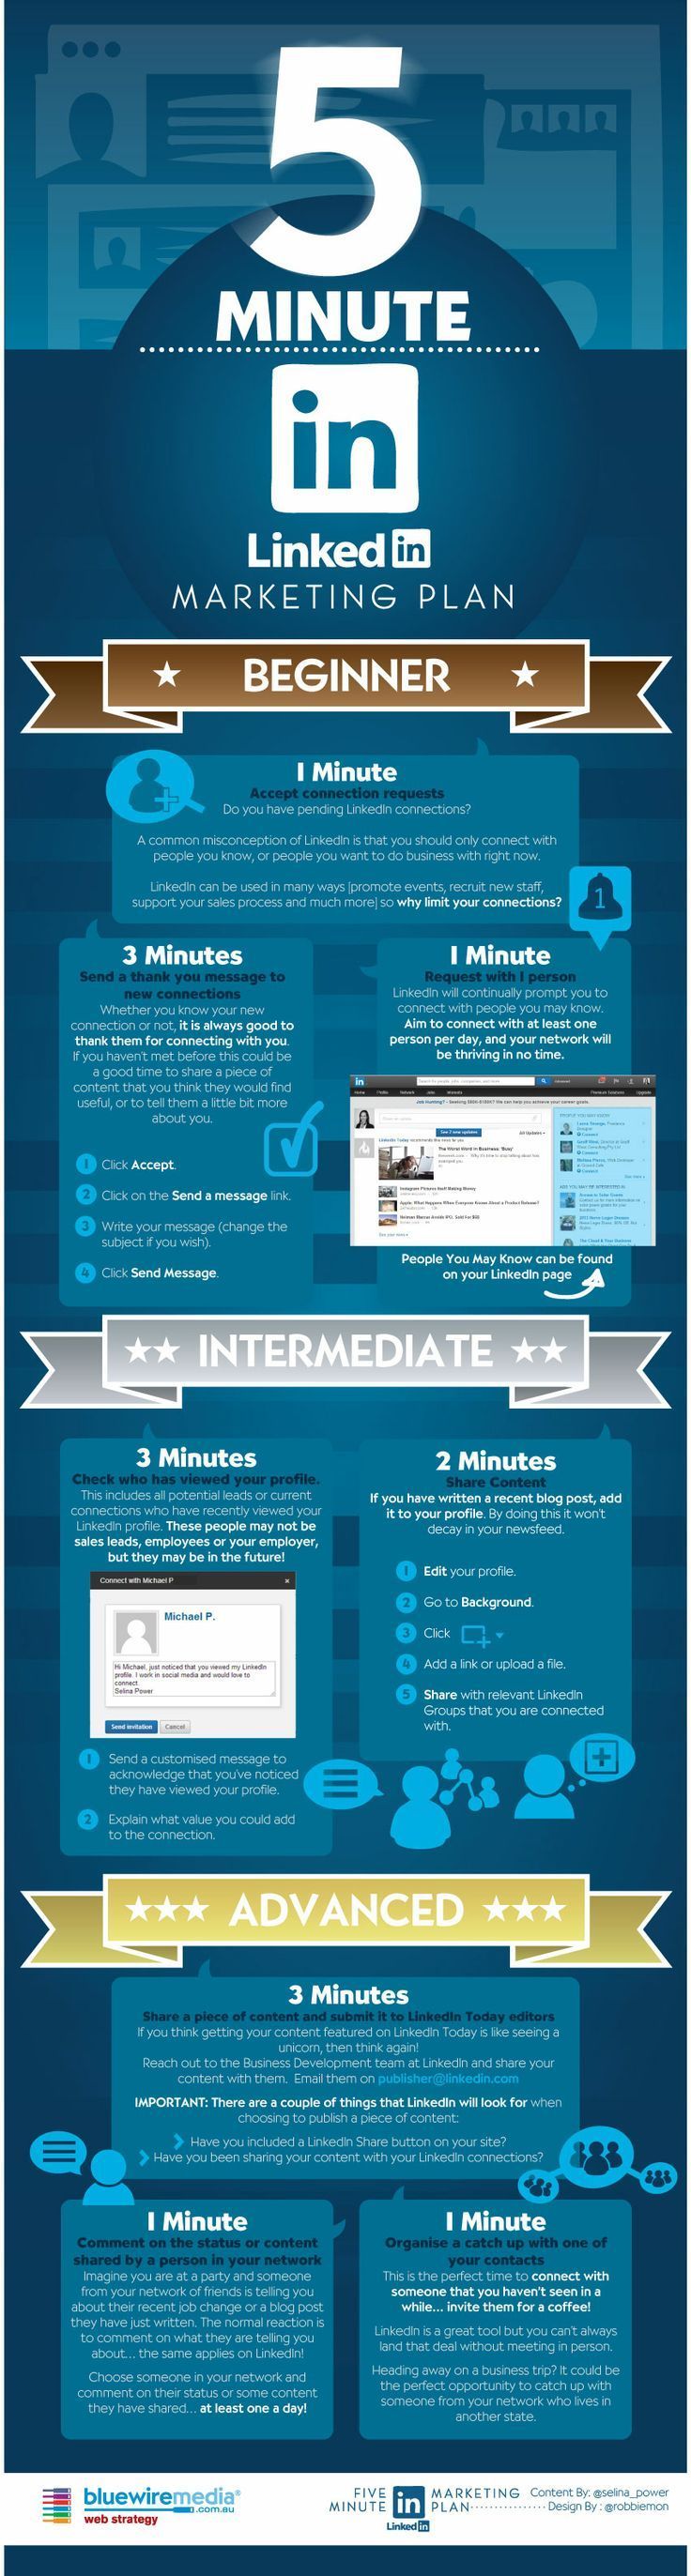 Infographic: 15 Minute LinkedIn Marketing Plan